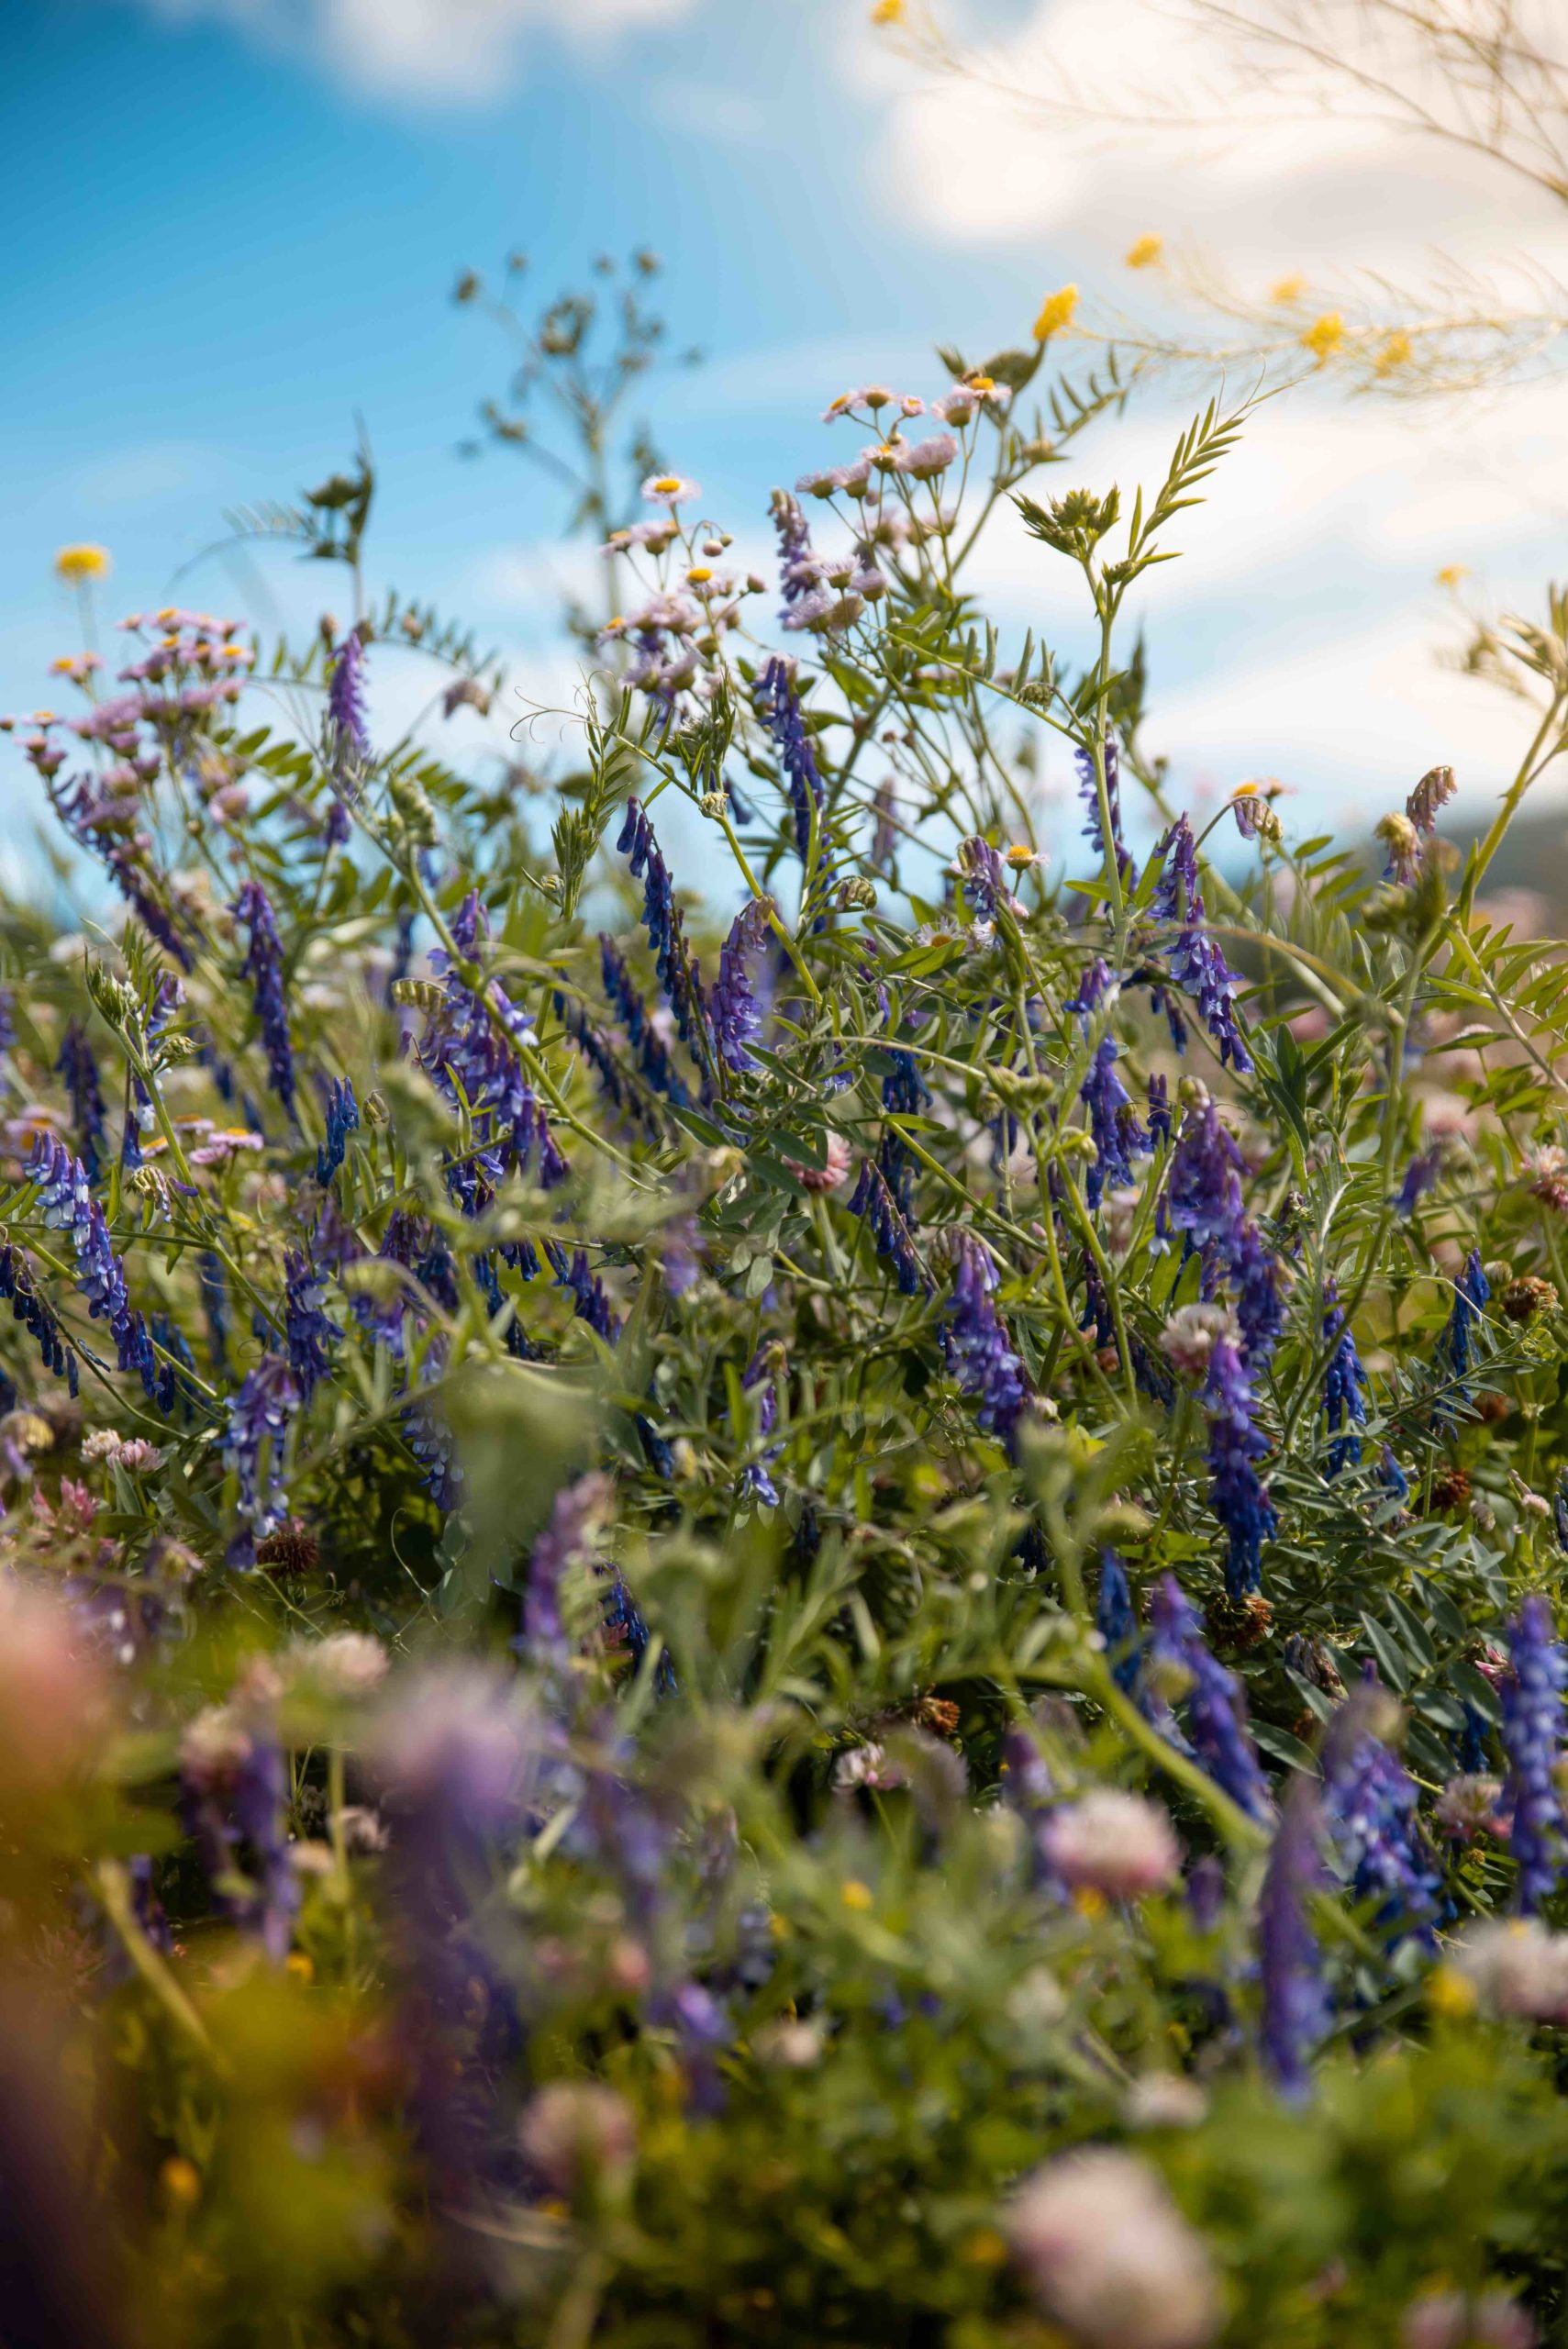 wildflowers grown to attract natural predators is a regenerative agriculture practice